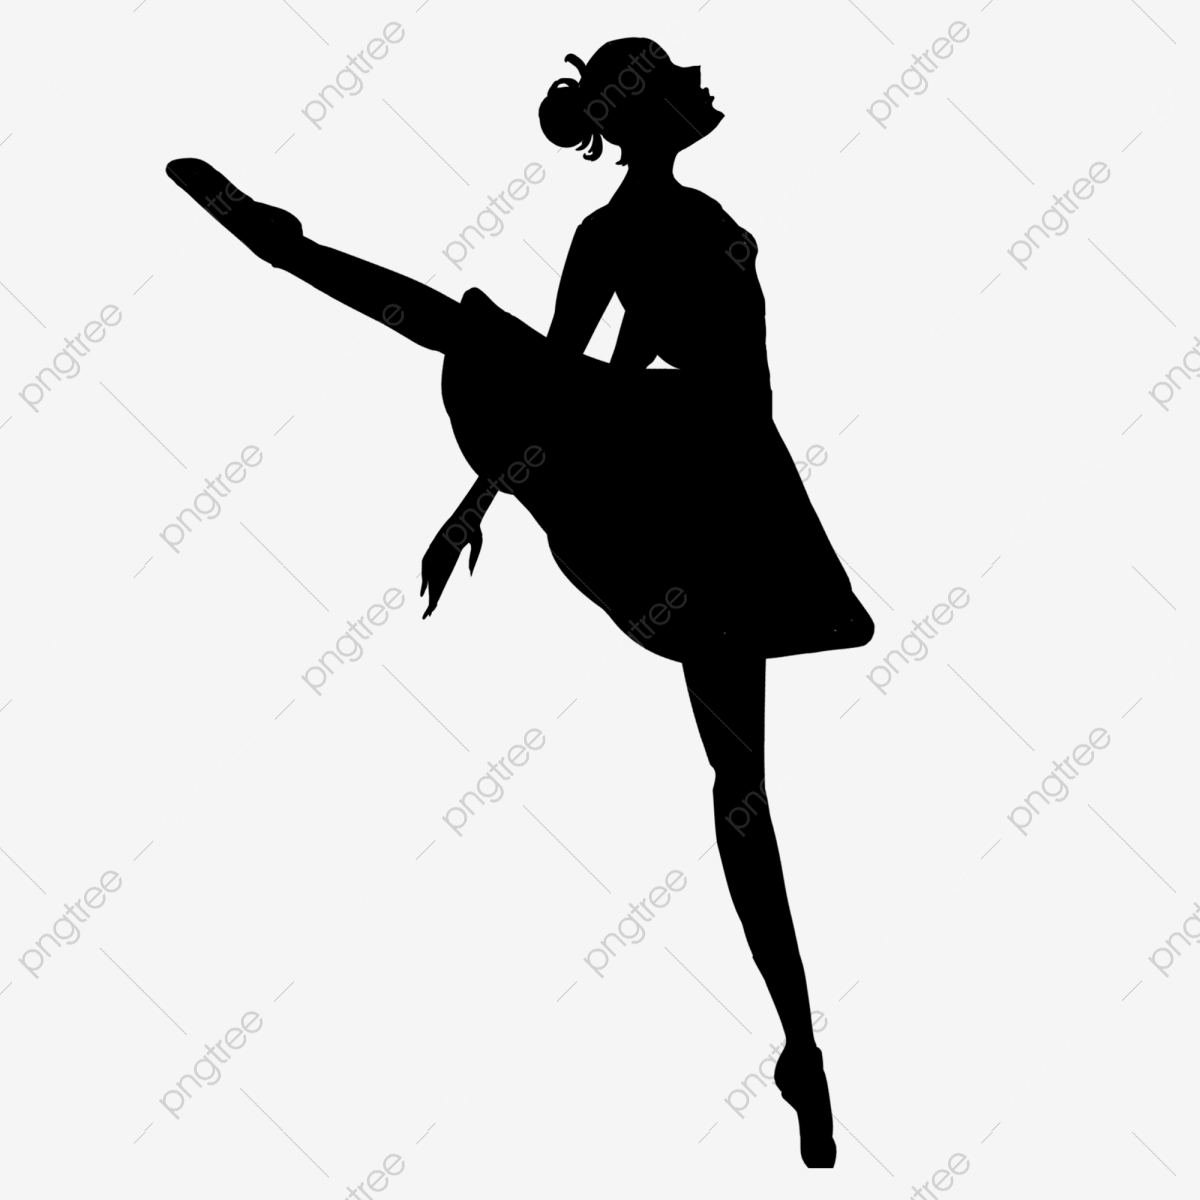 Cartoon Ballet Girl Dancing Silhouette Dancing Silhouette Girl Dancing Silhouette Png Transparent Clipart Image And Psd File For Free Download